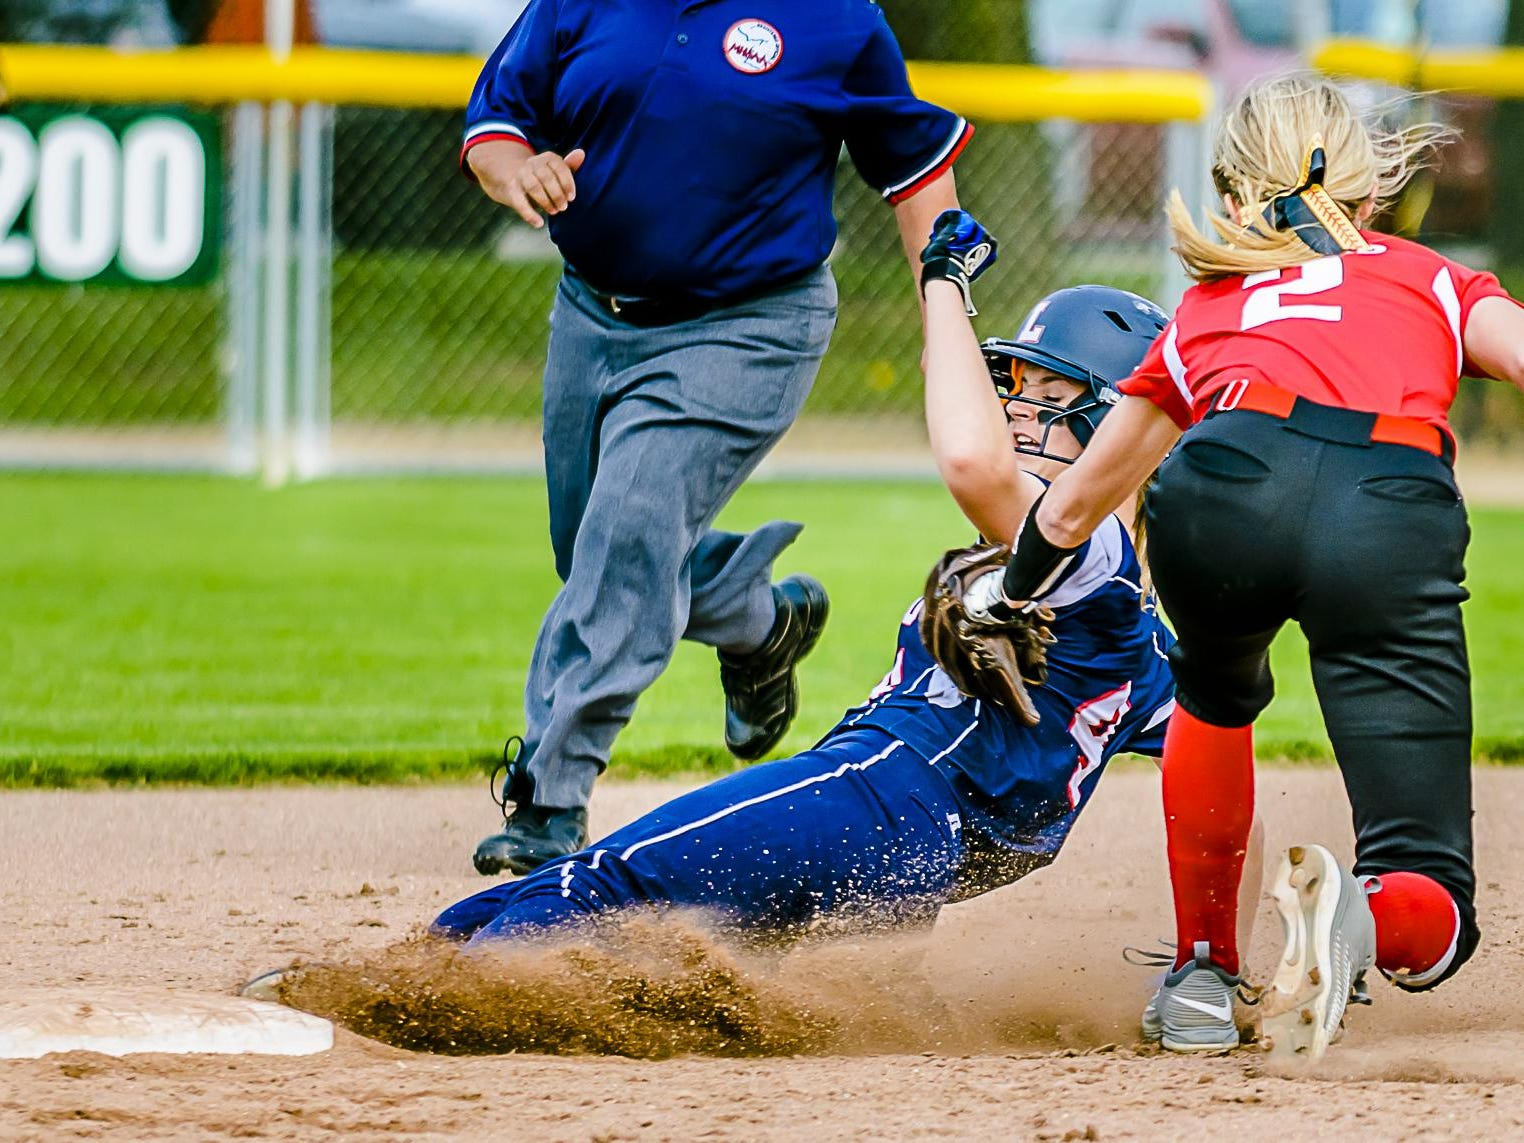 Maranda Barton ,bottom, of Lakewood beats a tag by Katie Eppard ,2, of Laingsburg to steal 2nd in the 6th inning of their Softball Classic first round game Tuesday May 17, 2016 at Ranney Park in Lansing. KEVIN W. FOWLER PHOTO